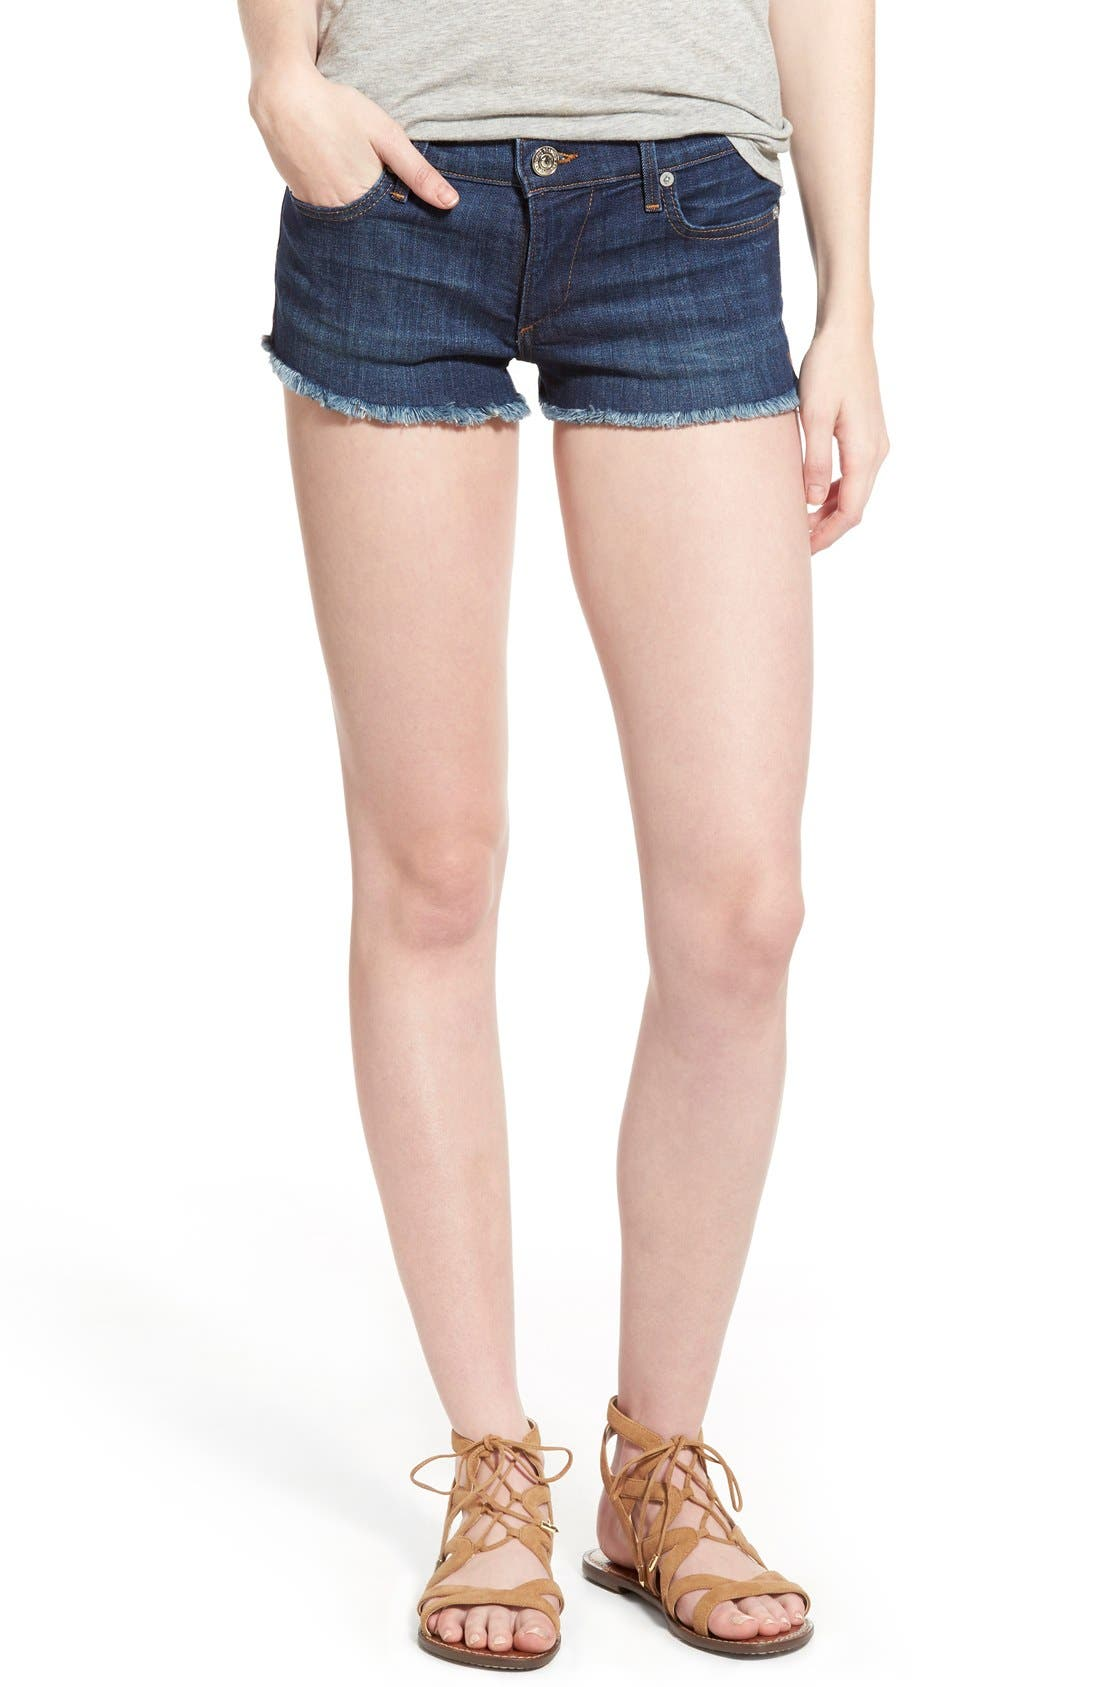 Joey Flap Pocket Cutoff Denim Shorts,                             Main thumbnail 1, color,                             Worn Vintage